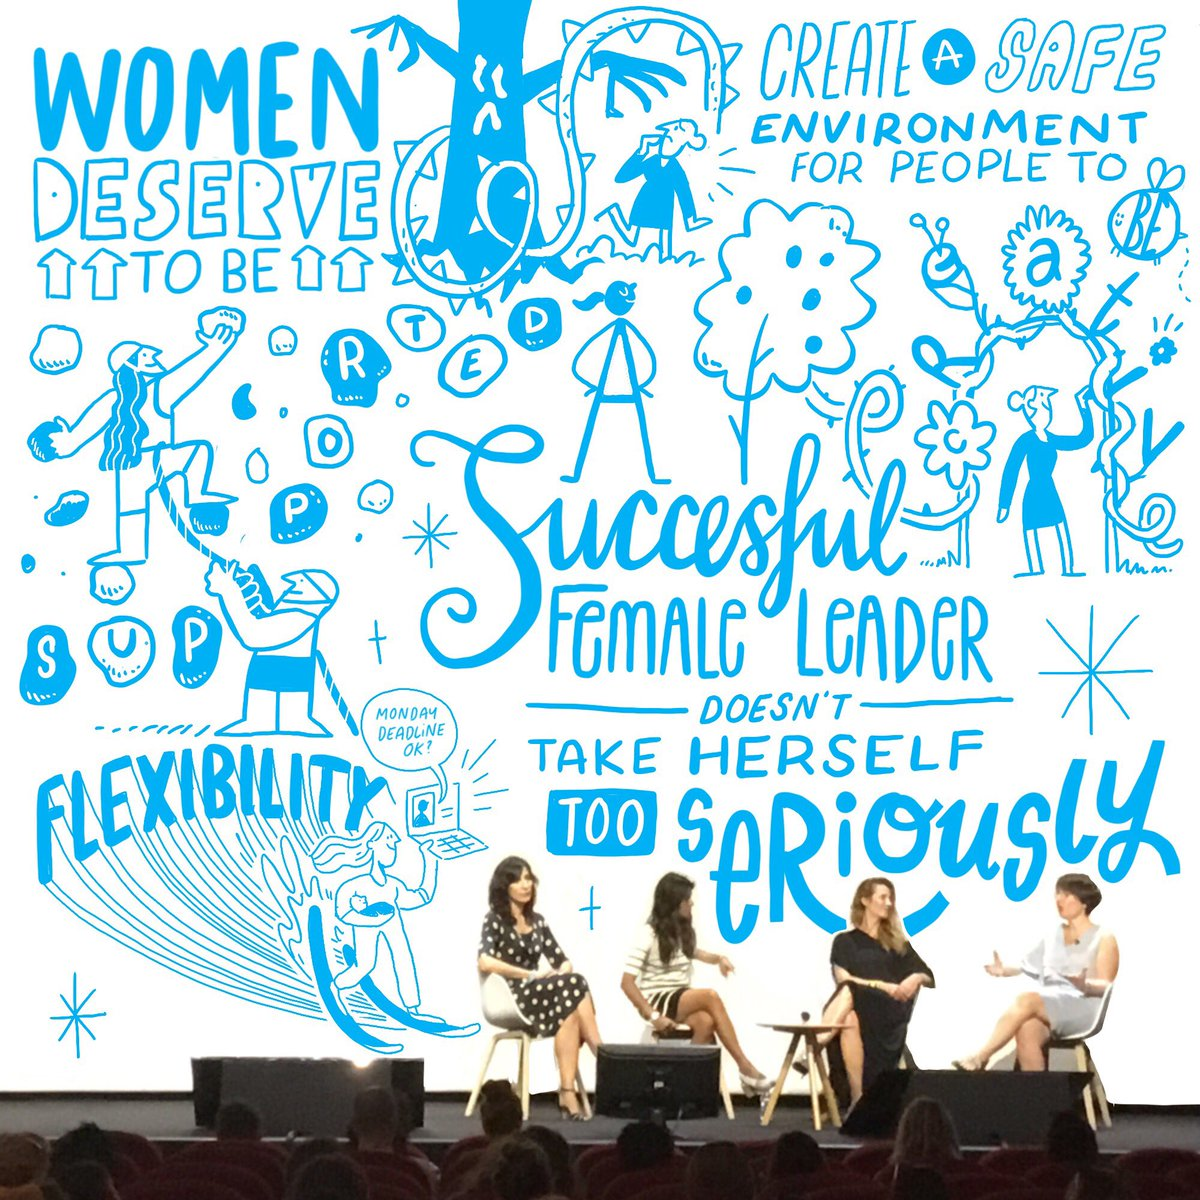 value of female leaders young rubicam.jpg